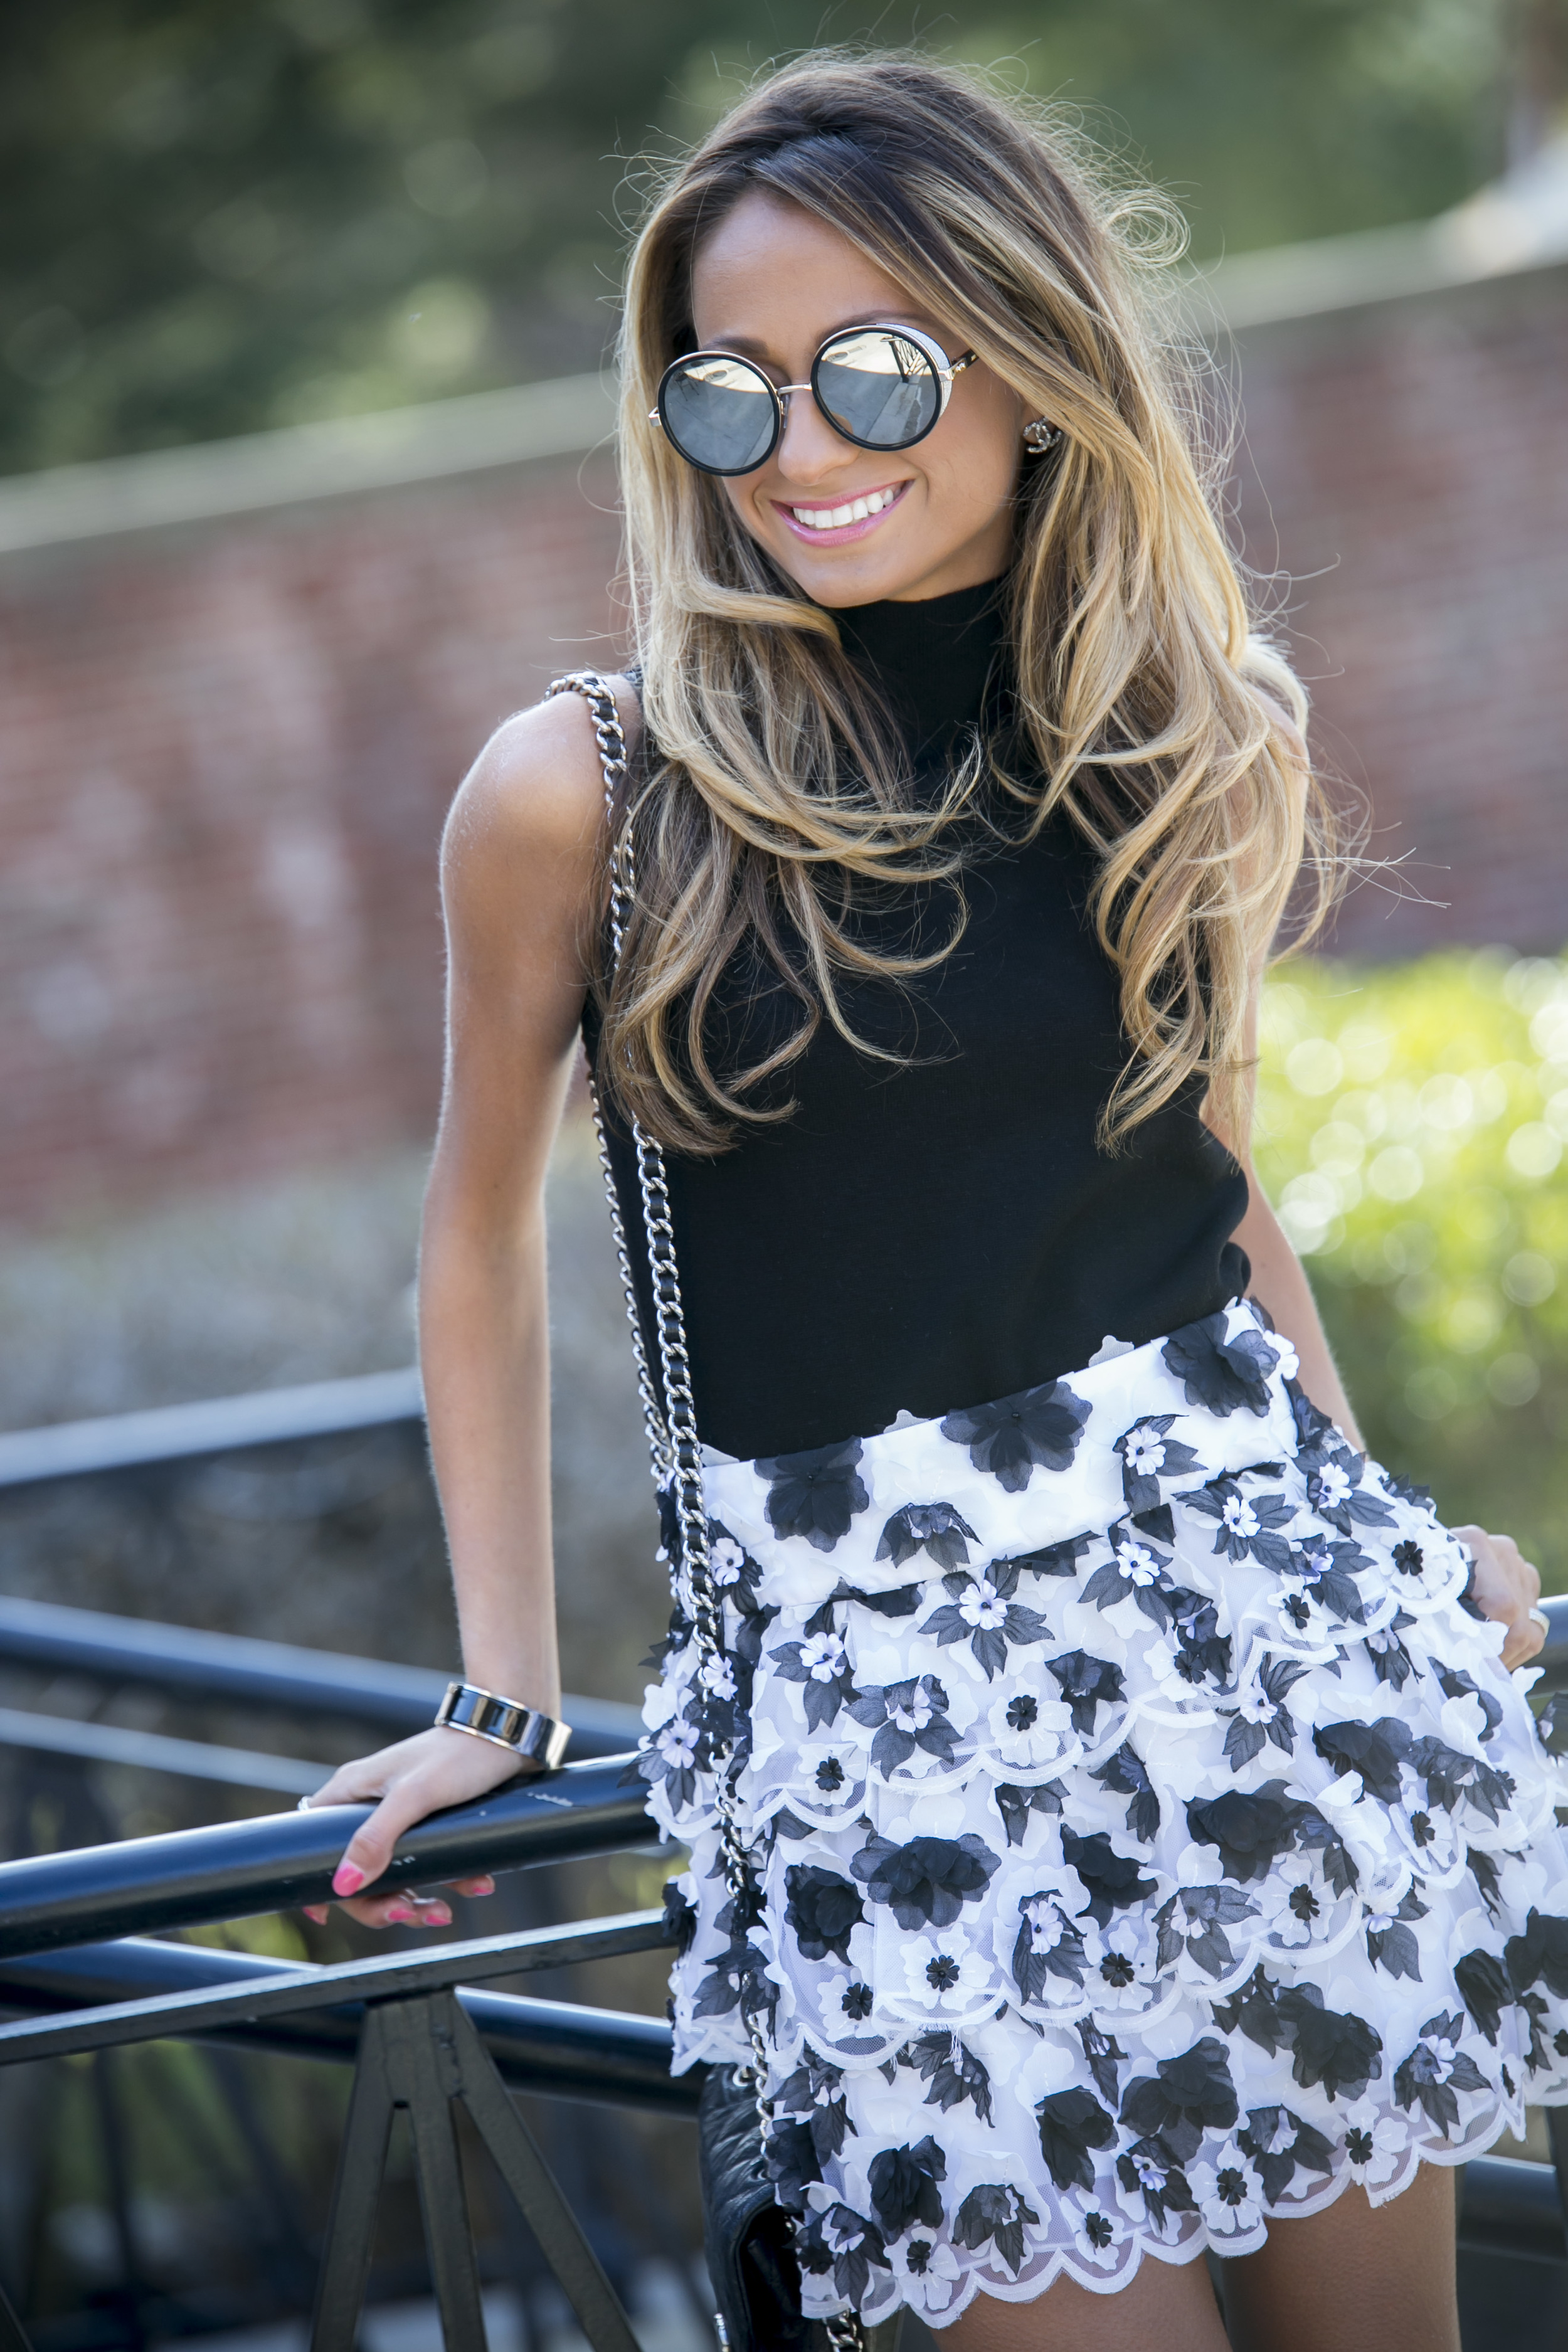 Top: Milly |Skirt:Alice & Olivia(older)|Boots:Christian Louboutin( similar here )|Sunnies: Jimmy Choo     Dino Petrocelli Photography